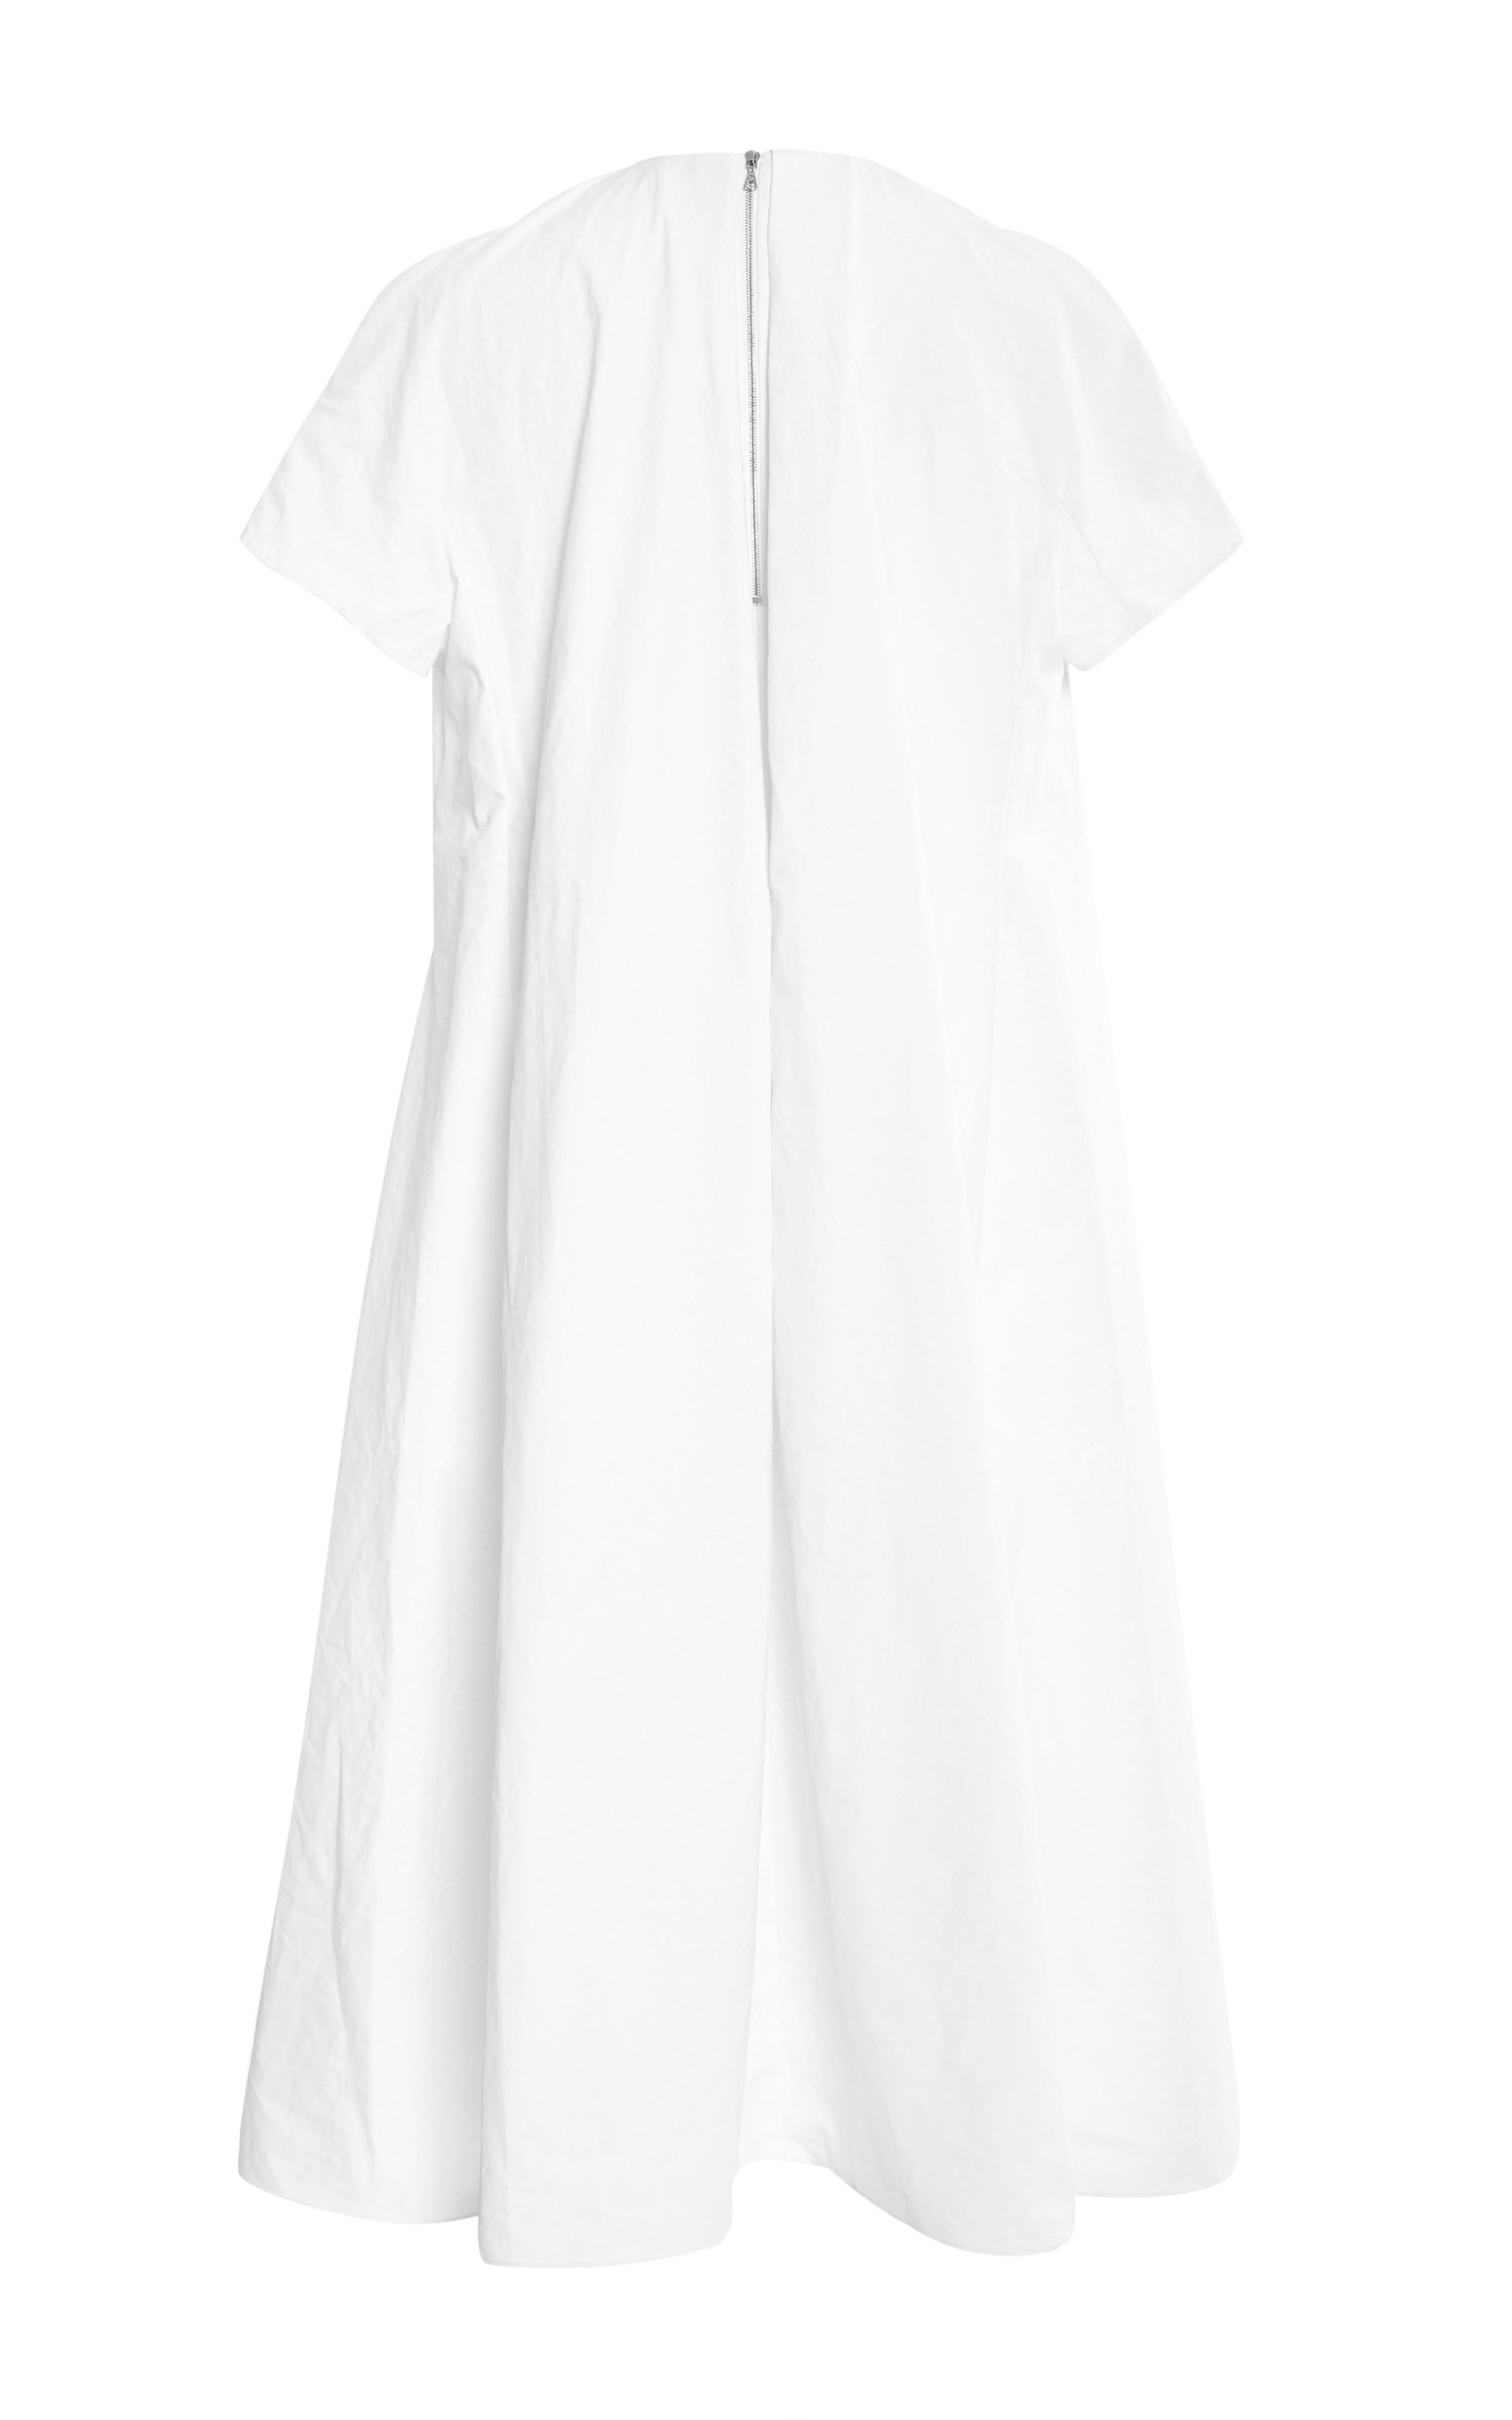 c36c6dd98fe7 Short Sleeve Dress With Sequins And White   Wiring Diagram Database